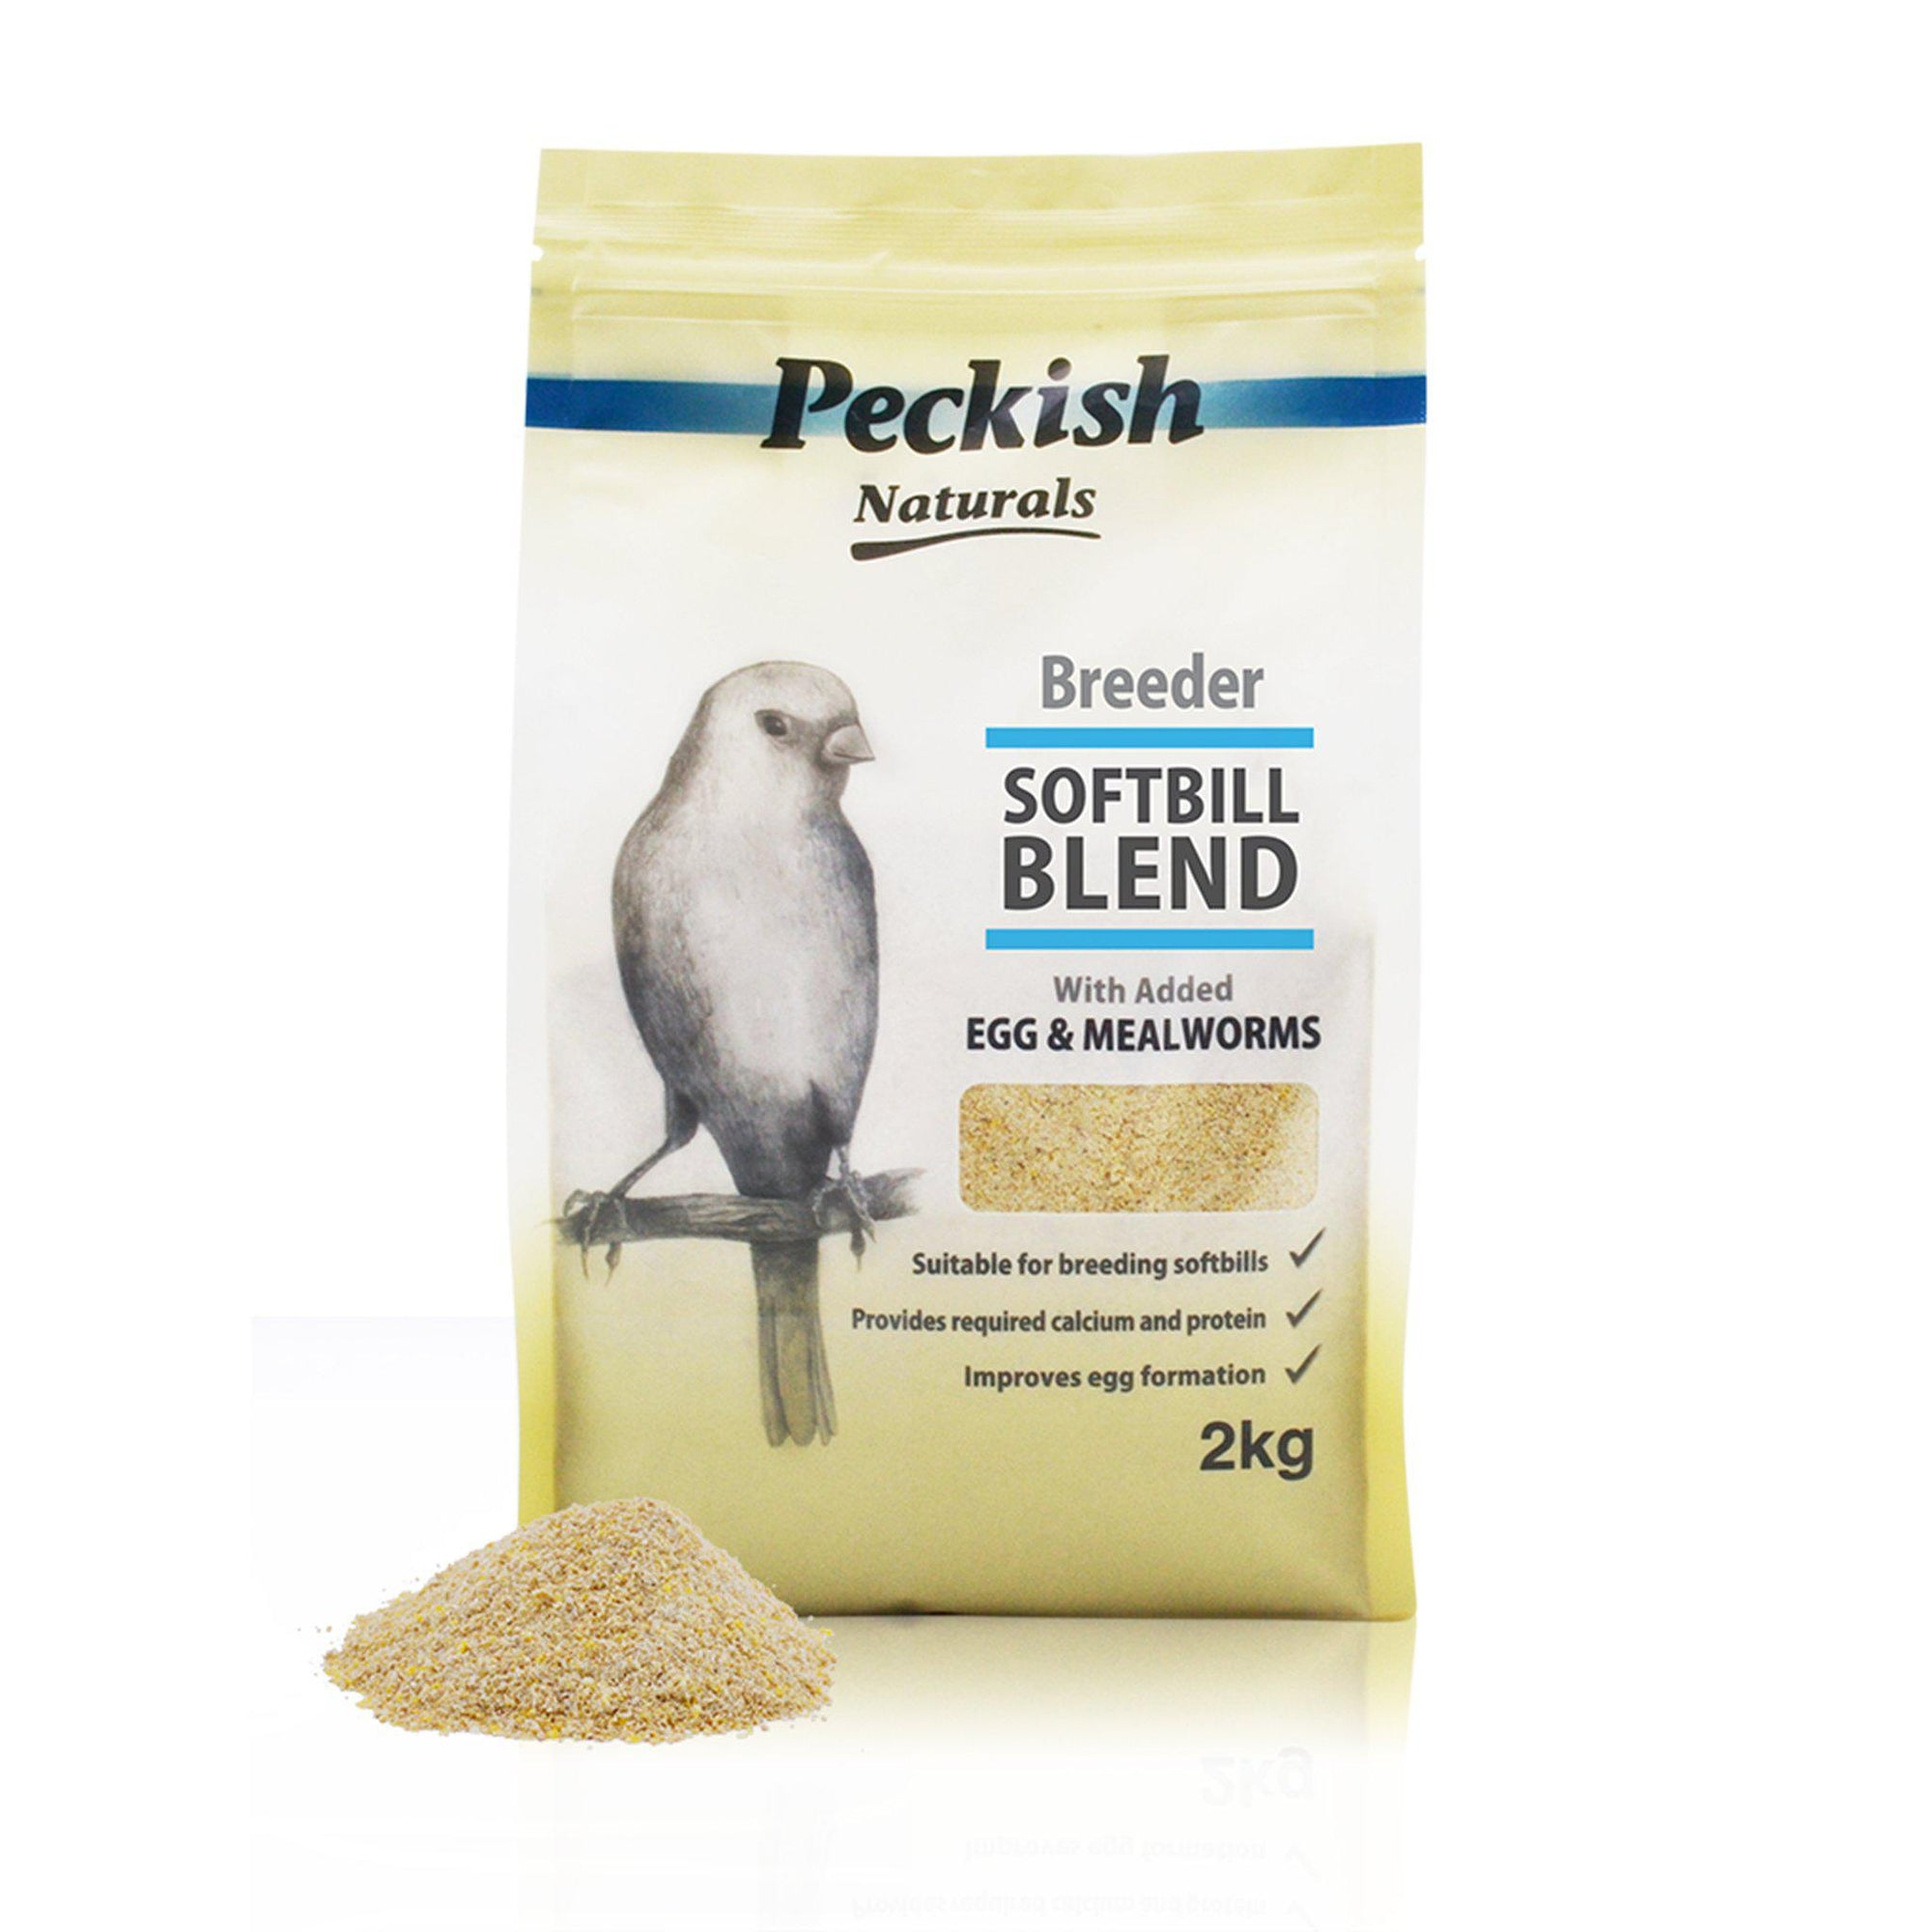 Peckish Naturals Breeder Softbill Blend - Egg & Mealworm - ComfyPet Products